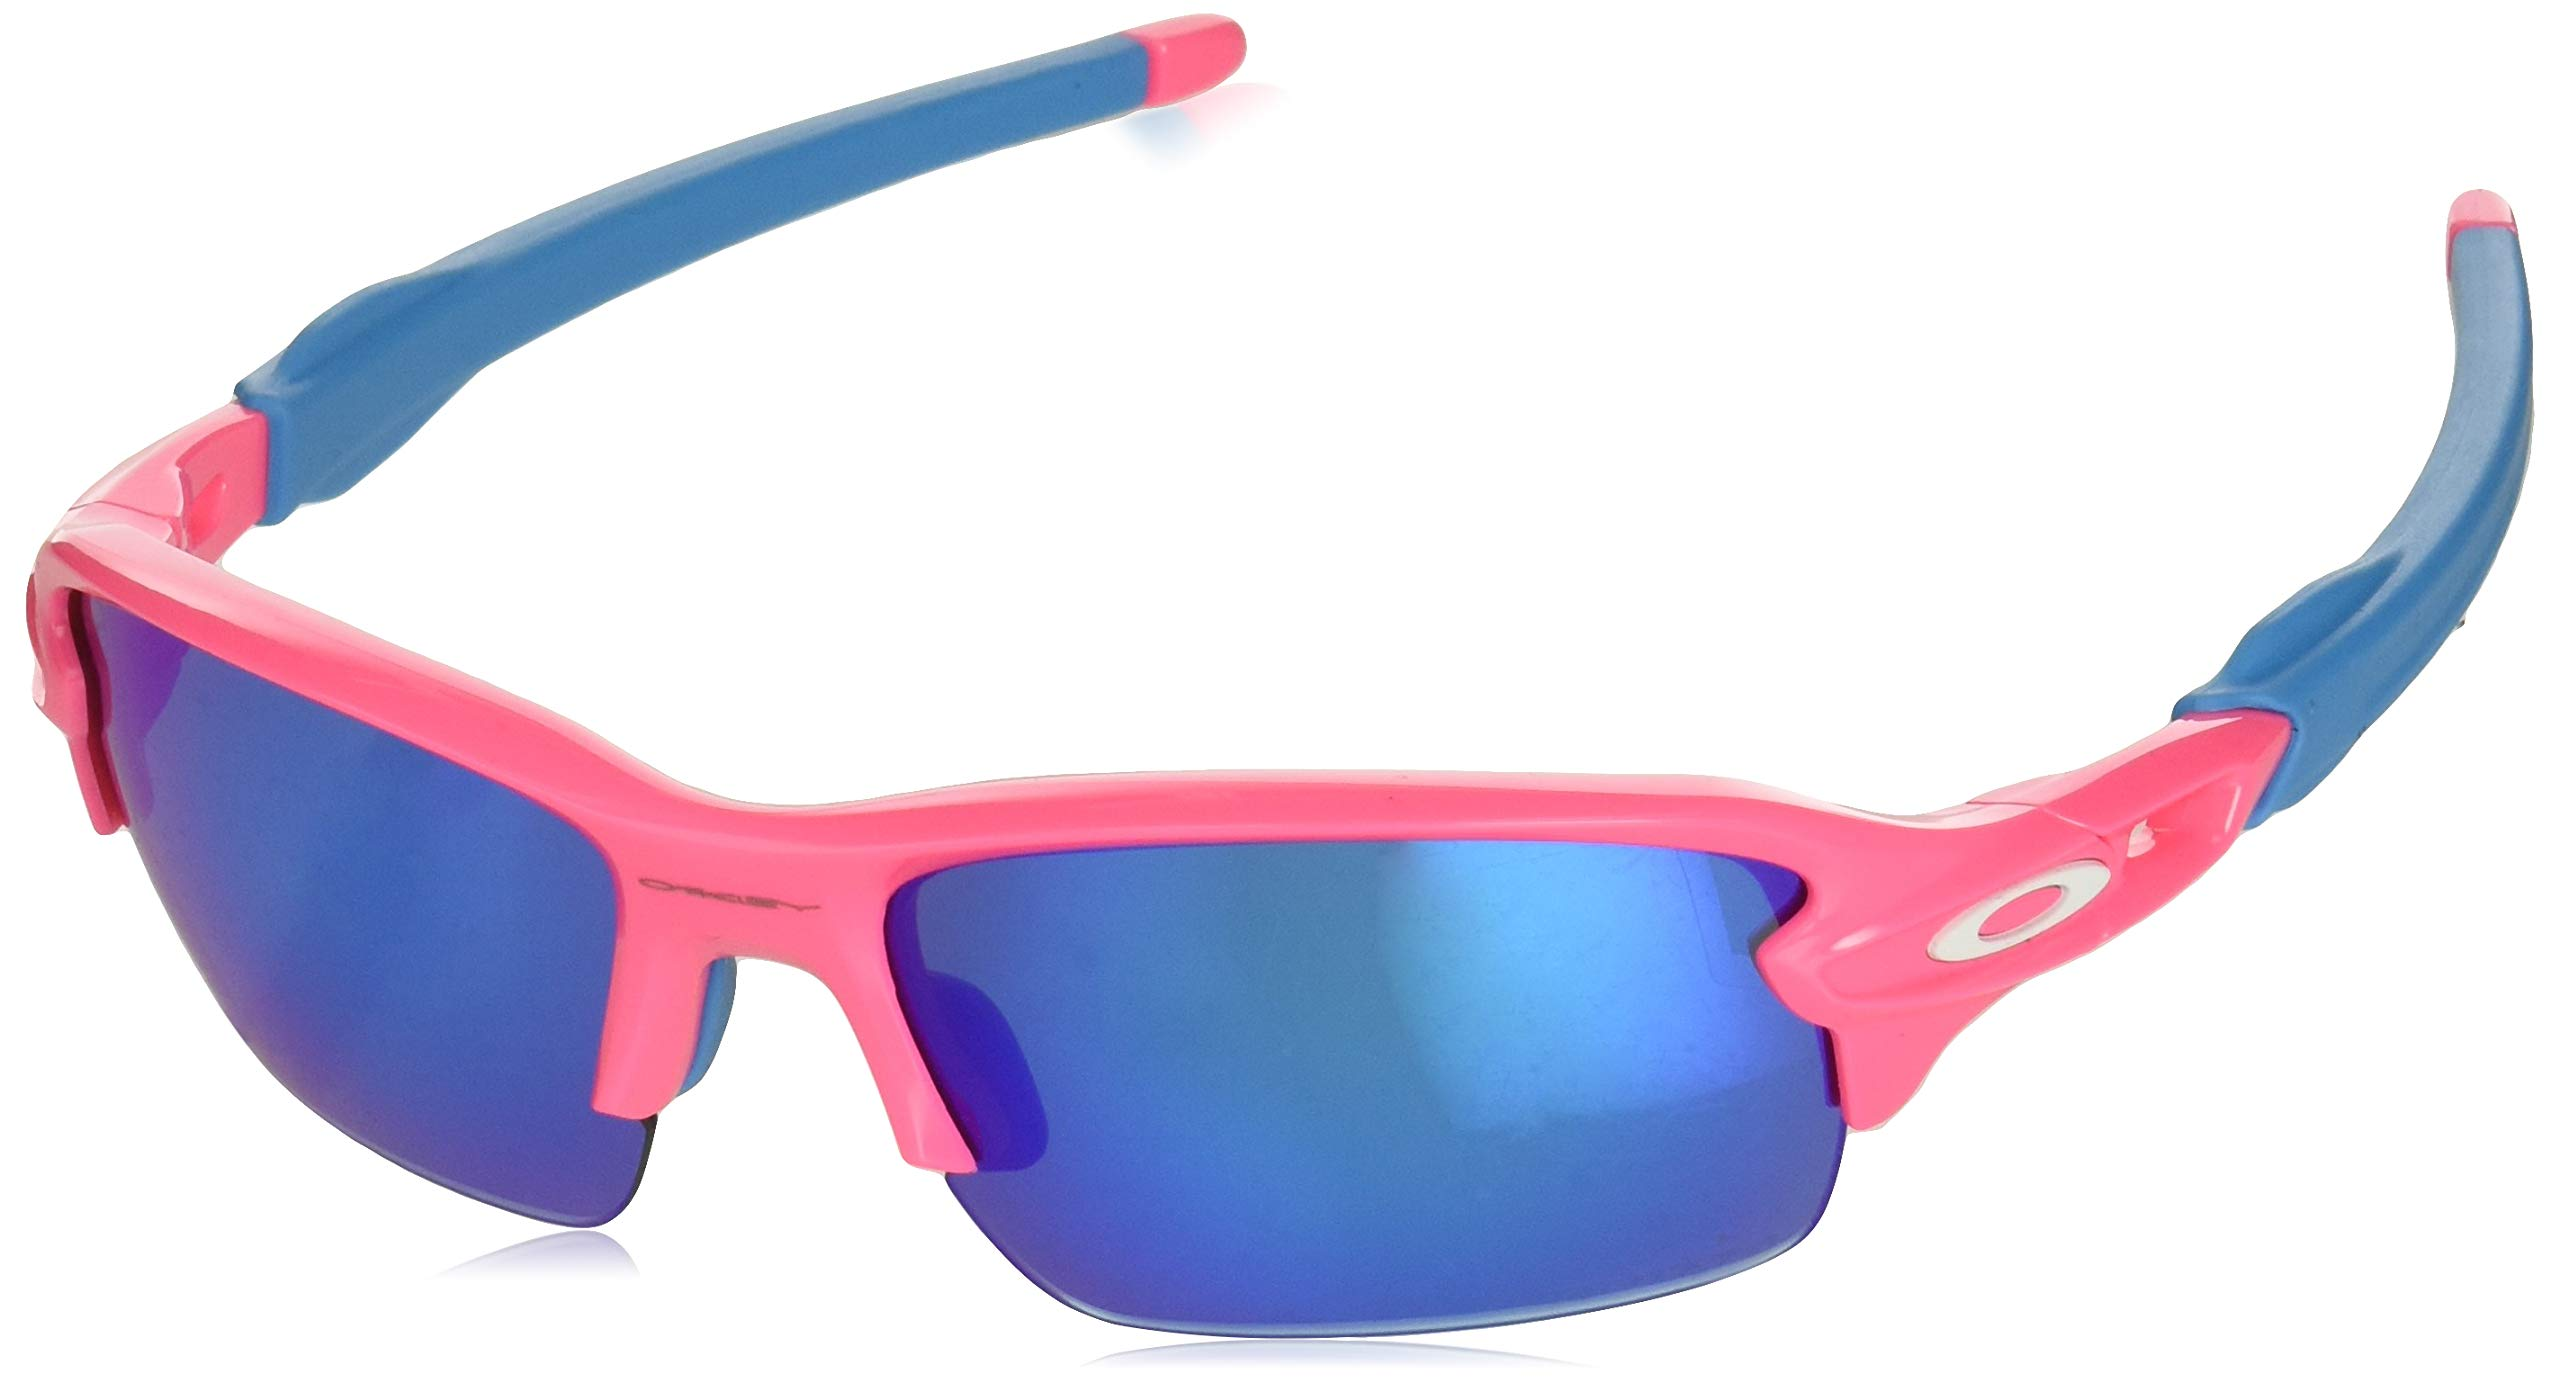 Oakley Boys' Flak Xs Non-Polarized Iridium Rectangular Sunglasses NEON PINK 59.0 mm